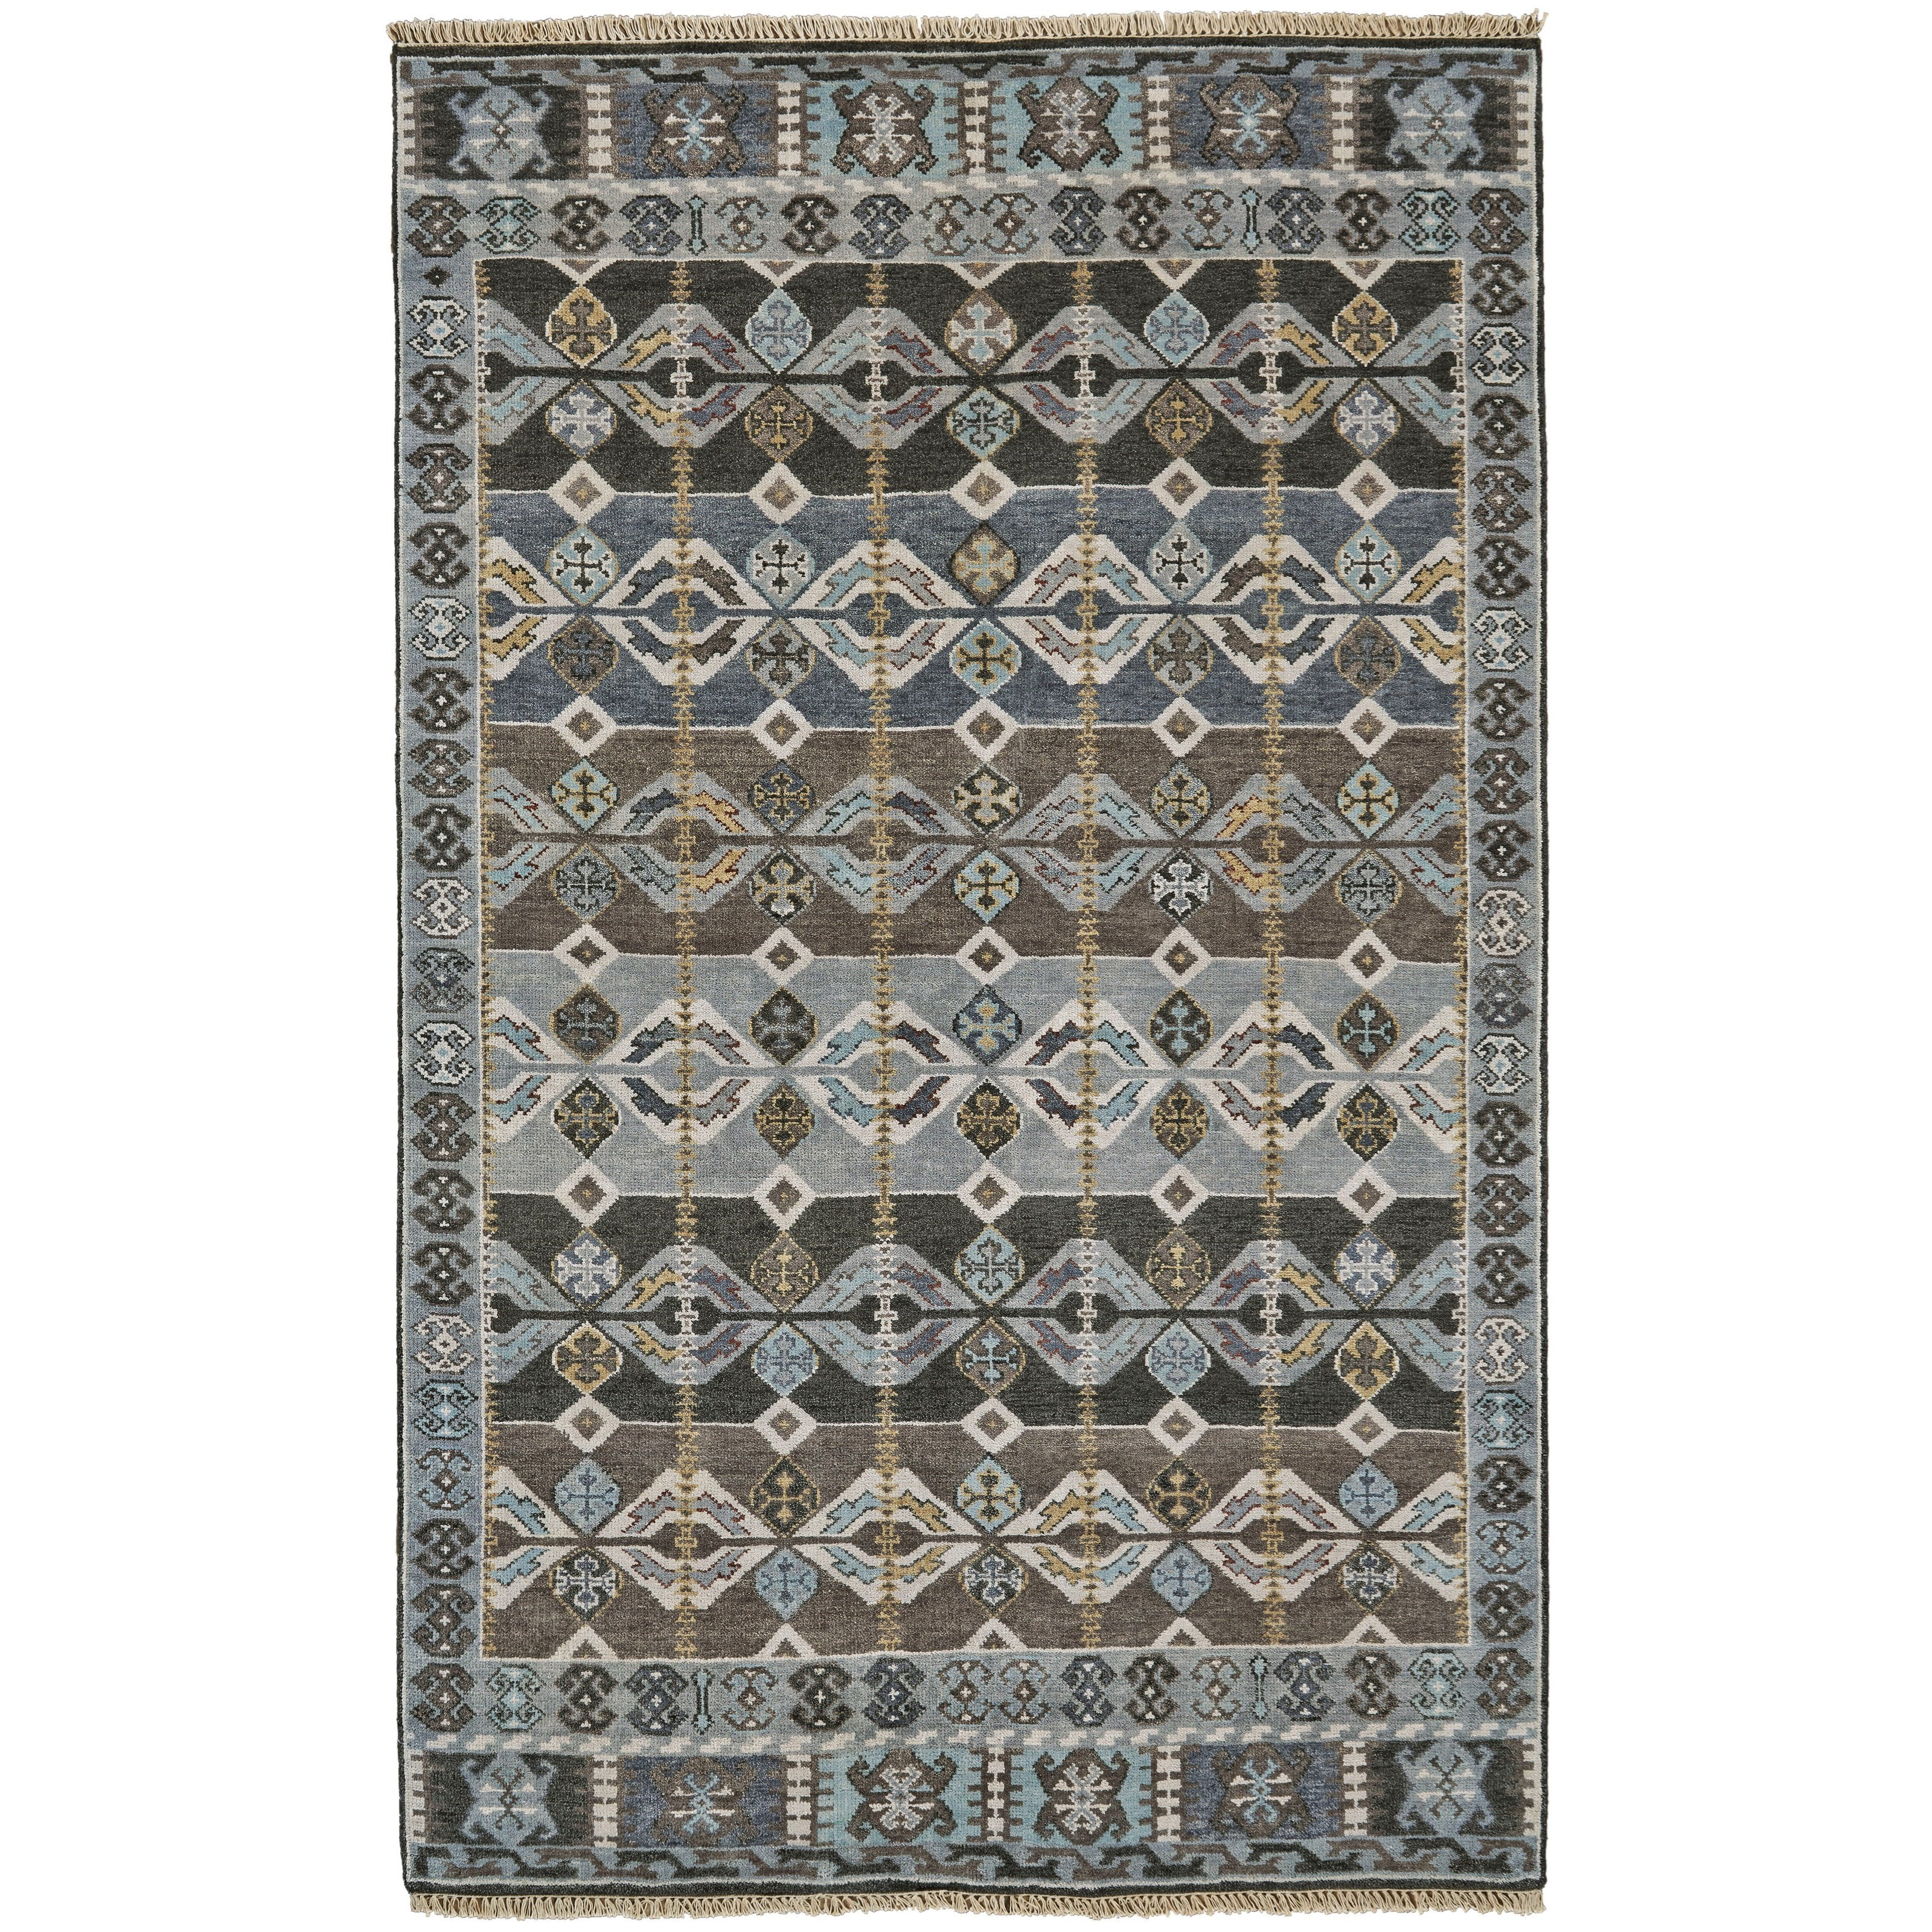 """Ashi Steel 8'-6"""" x 11'-6"""" Area Rug by Feizy Rugs at Sprintz Furniture"""